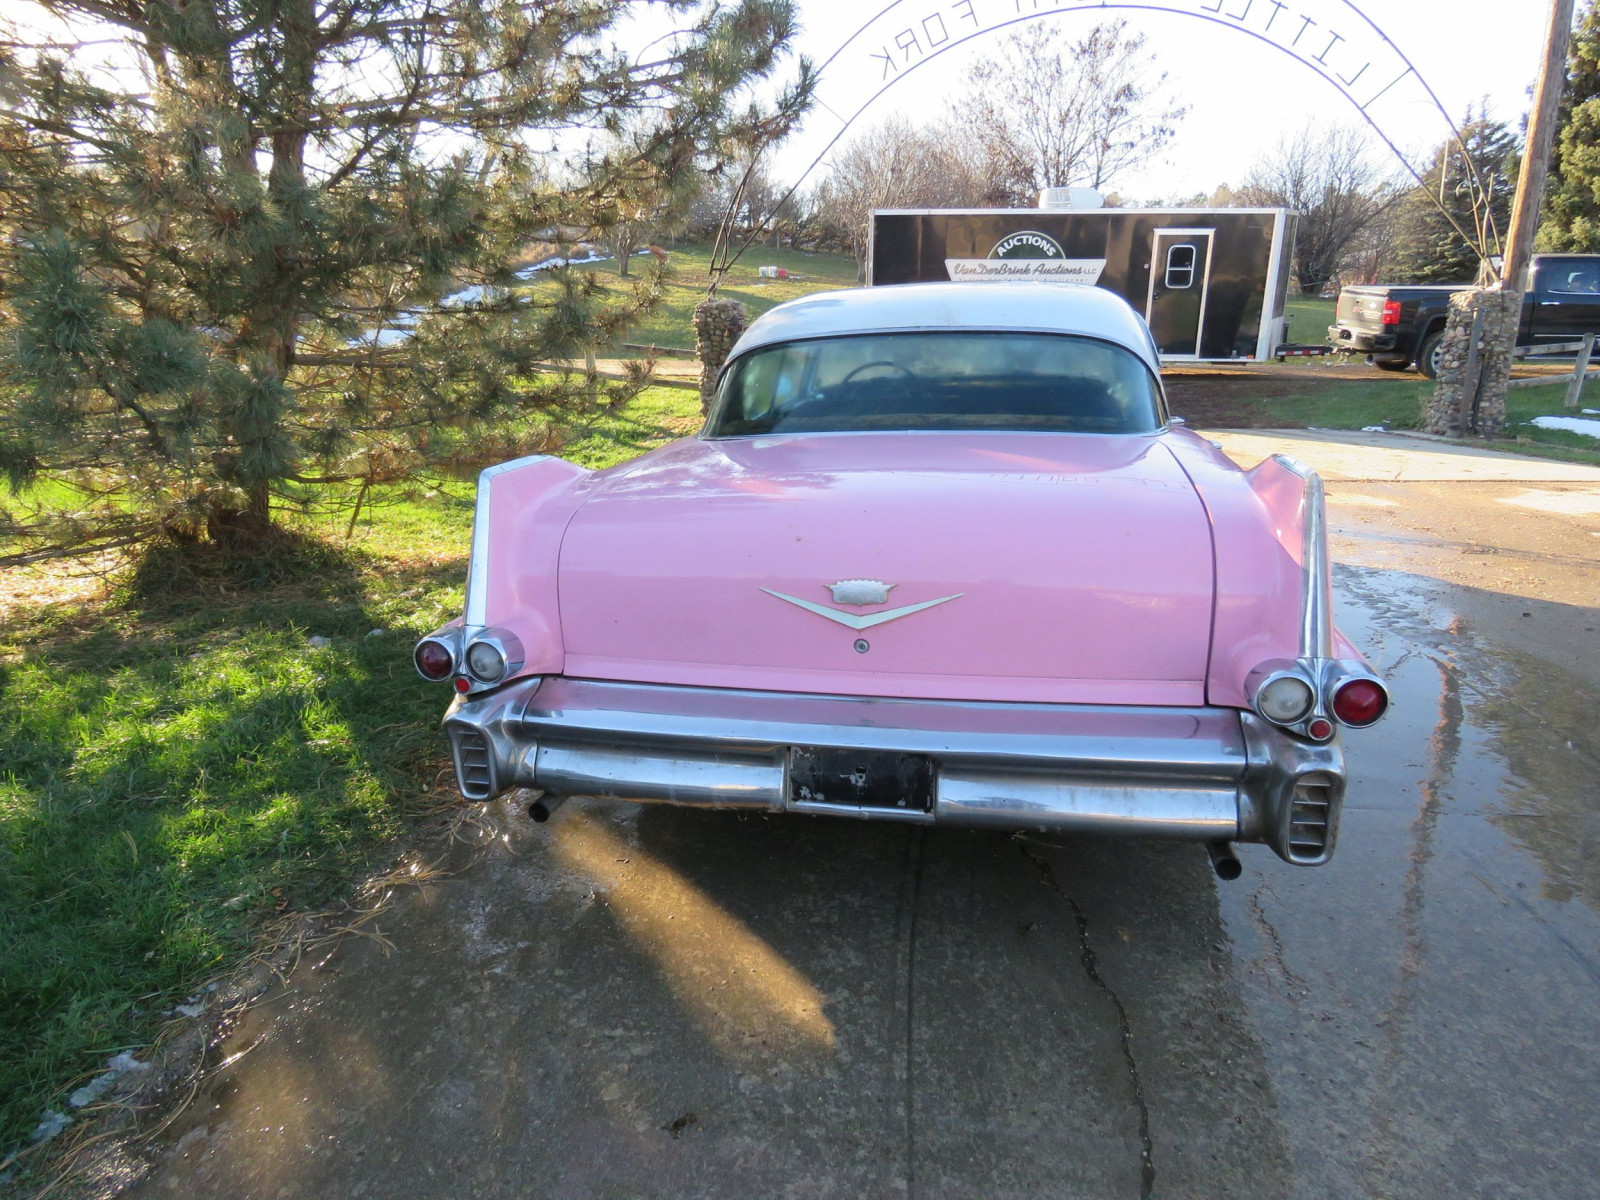 1957 Series 62 Cadillac 4dr Hard Top - Image 6